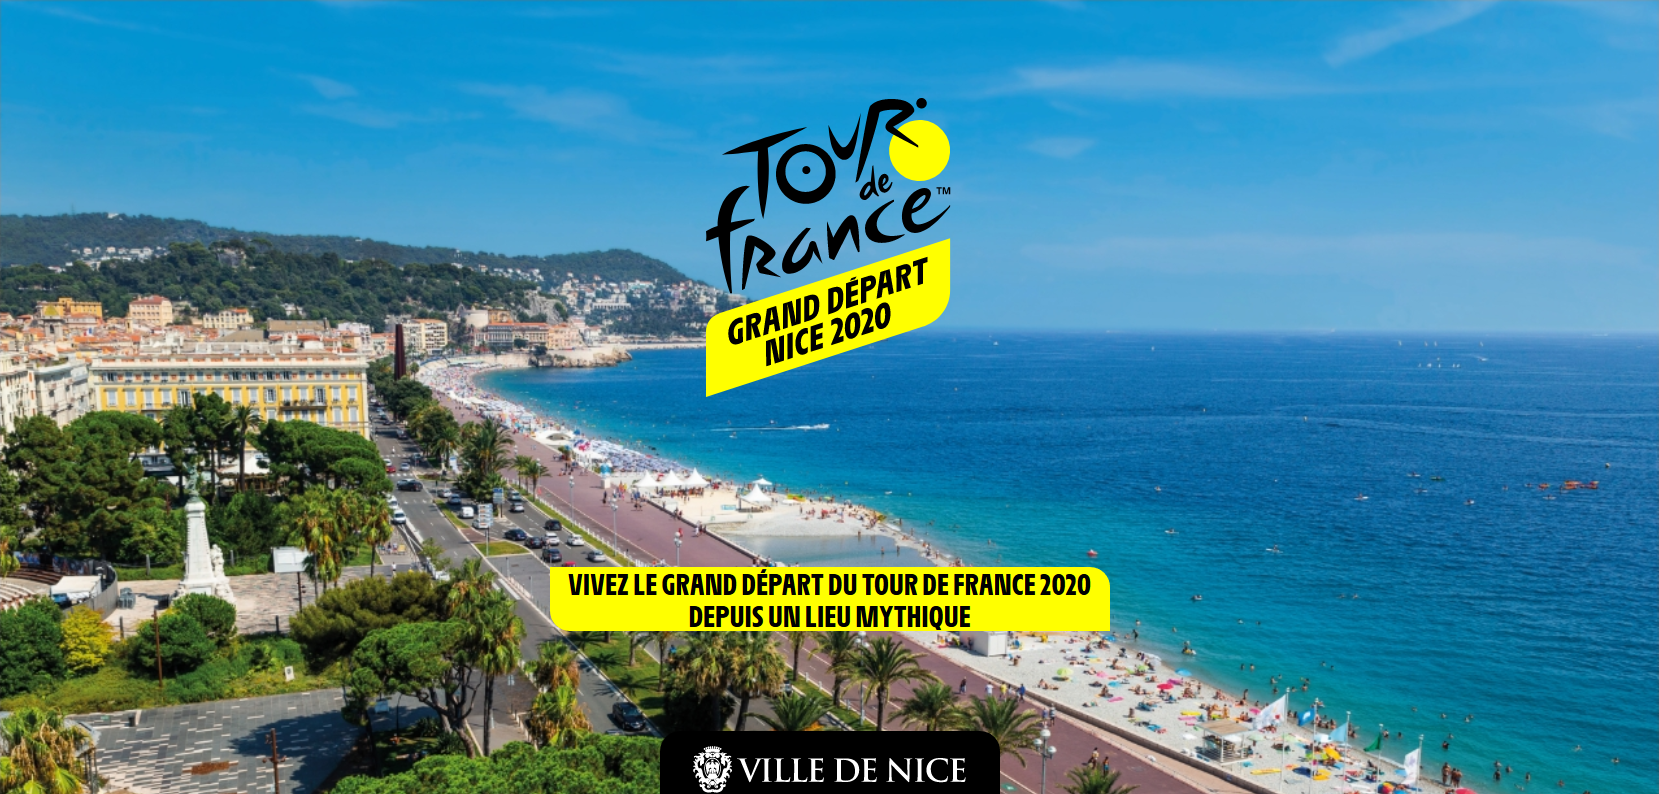 Your 3-star hotel for the start of the Tour de France 2020 in Nice - Crédit ville de Nice